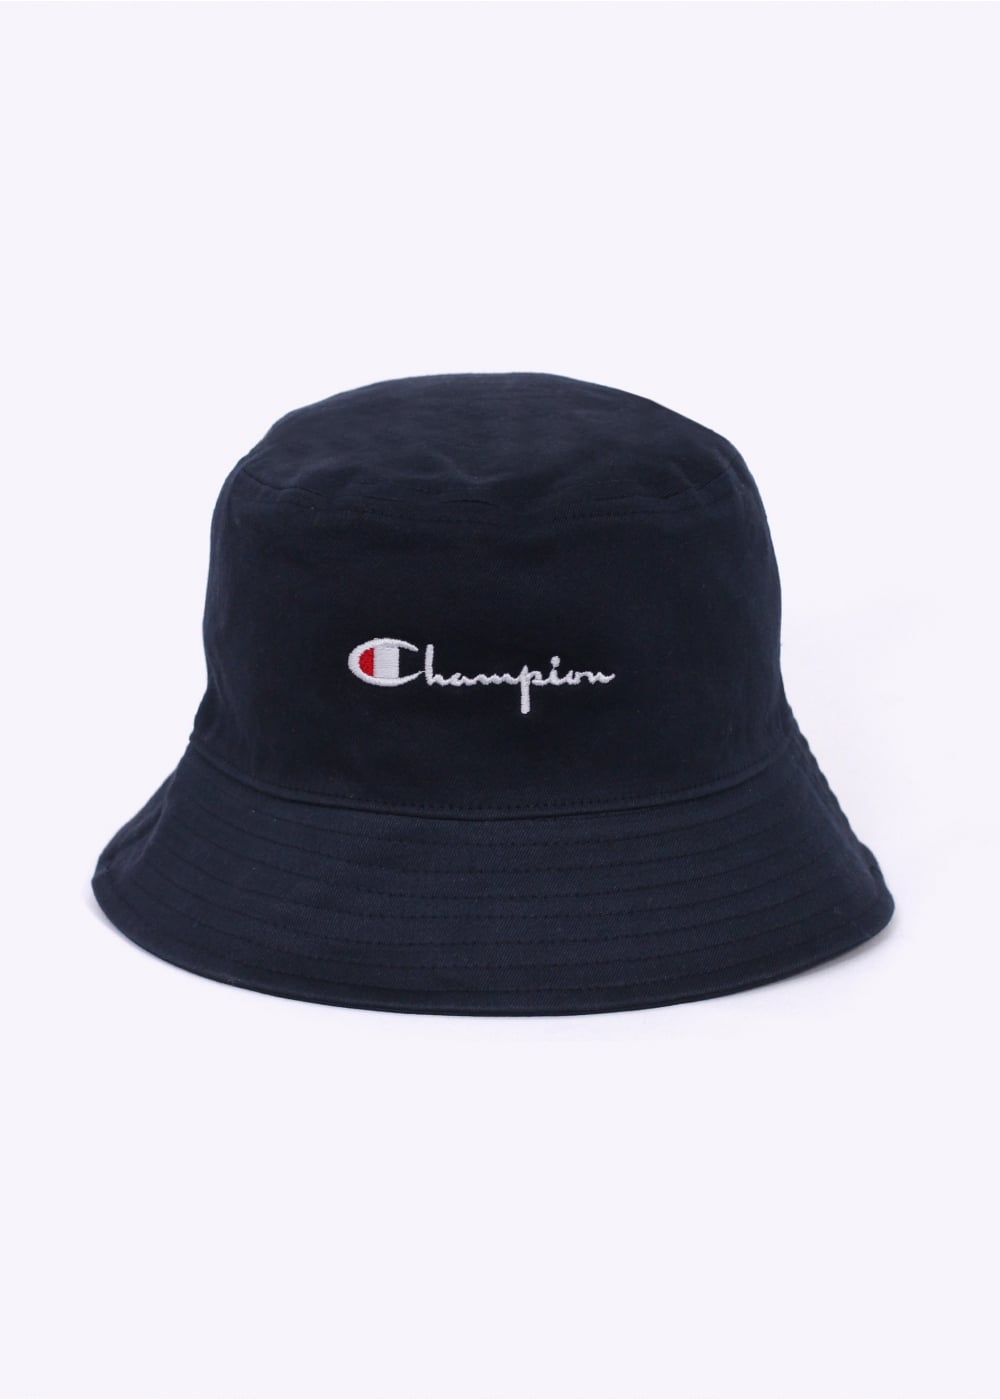 Champion Bucket Hat - Navy - Headwear from Triads UK 5e7acf436c8